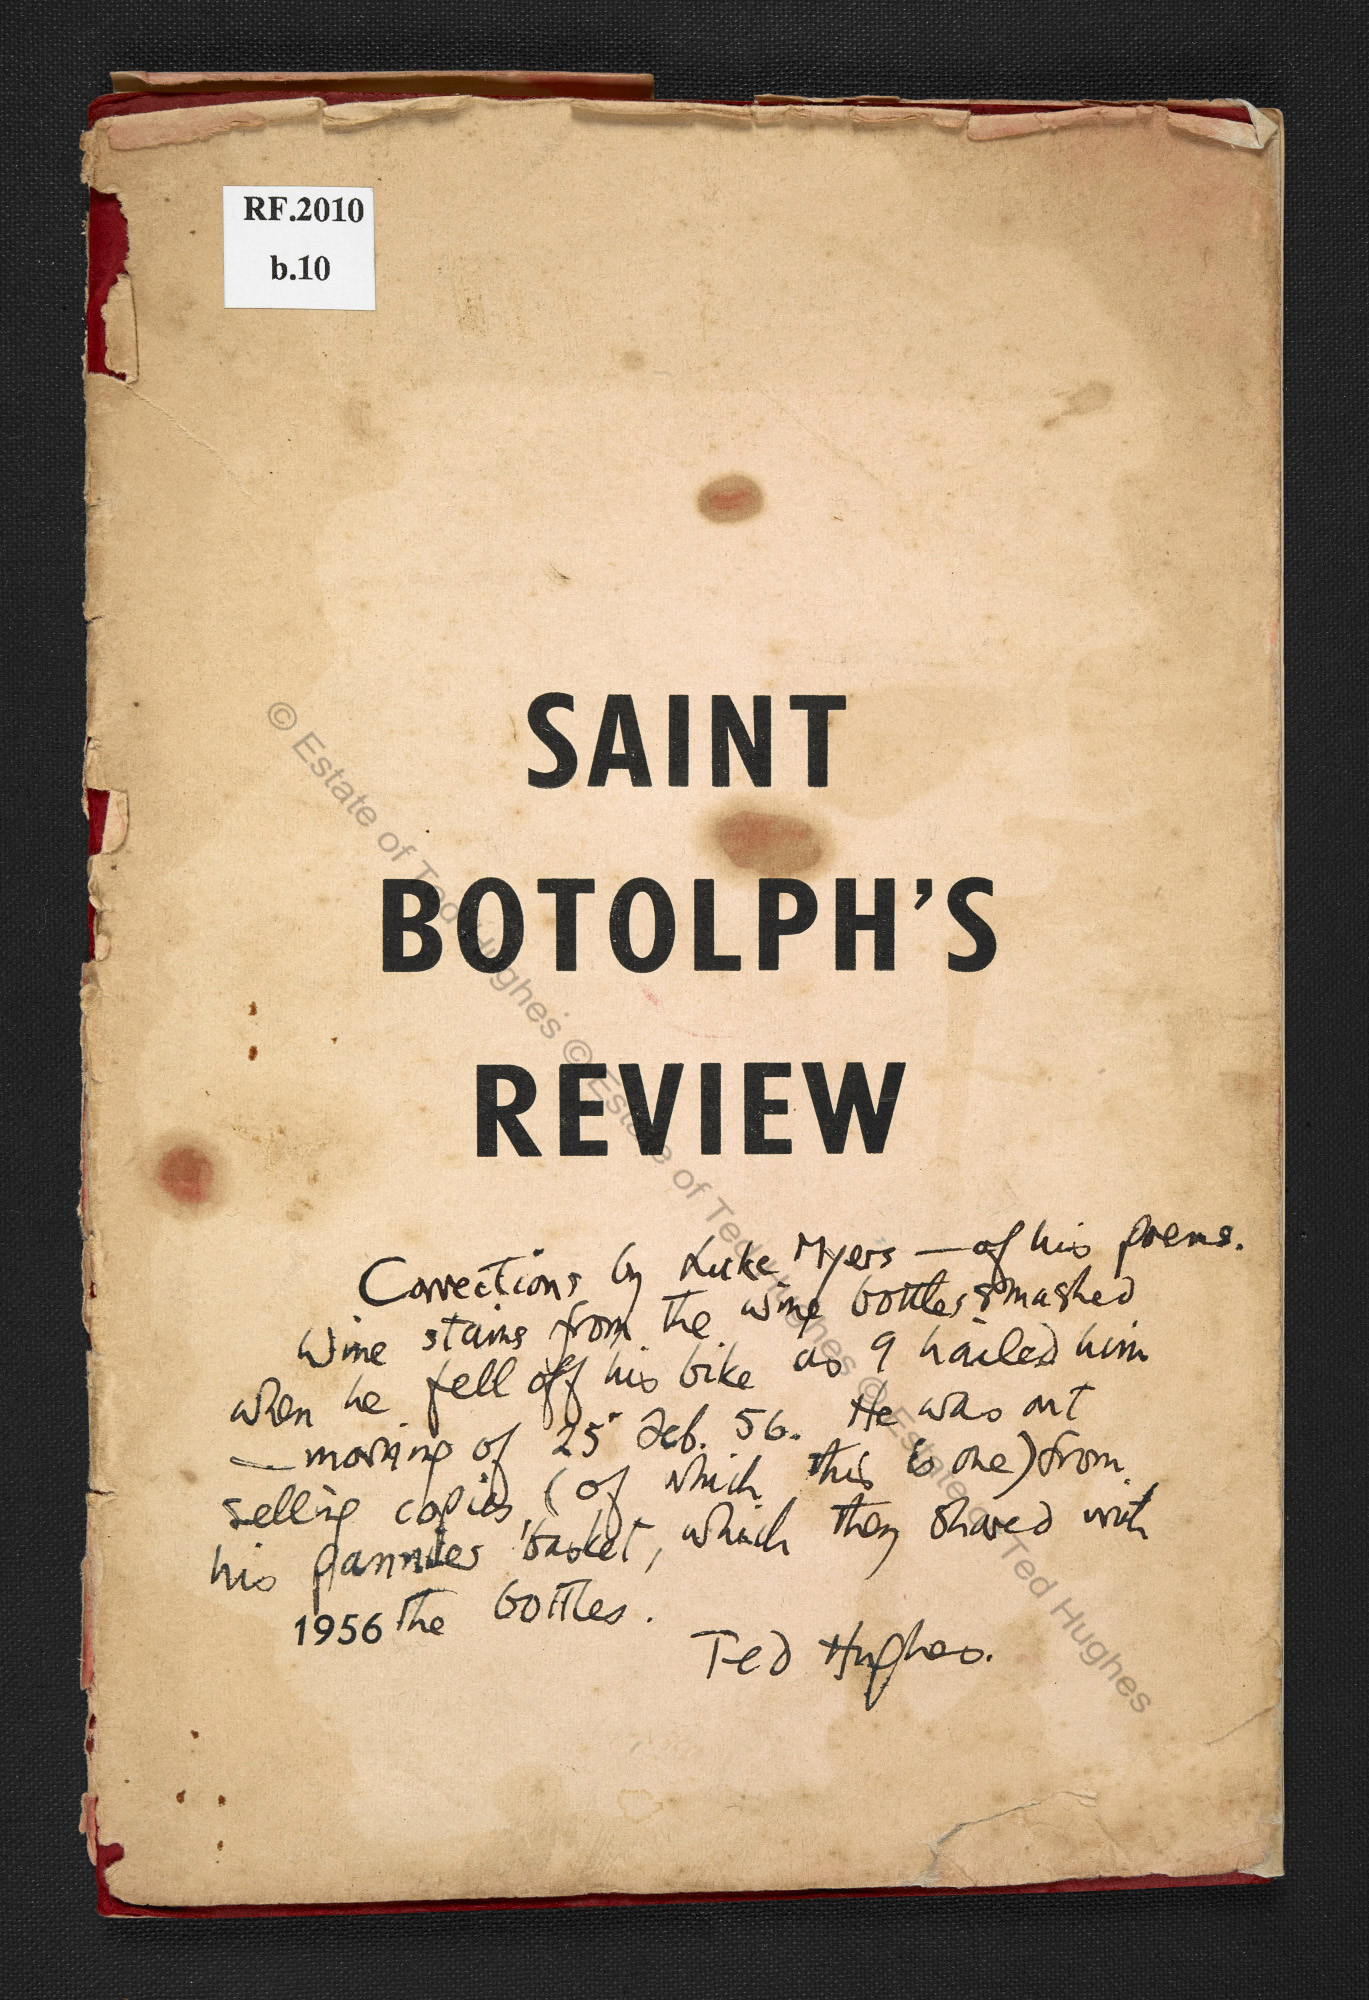 Saint Botolph's Review, with annotations in Ted Hughes' and Lucas Myers' hand